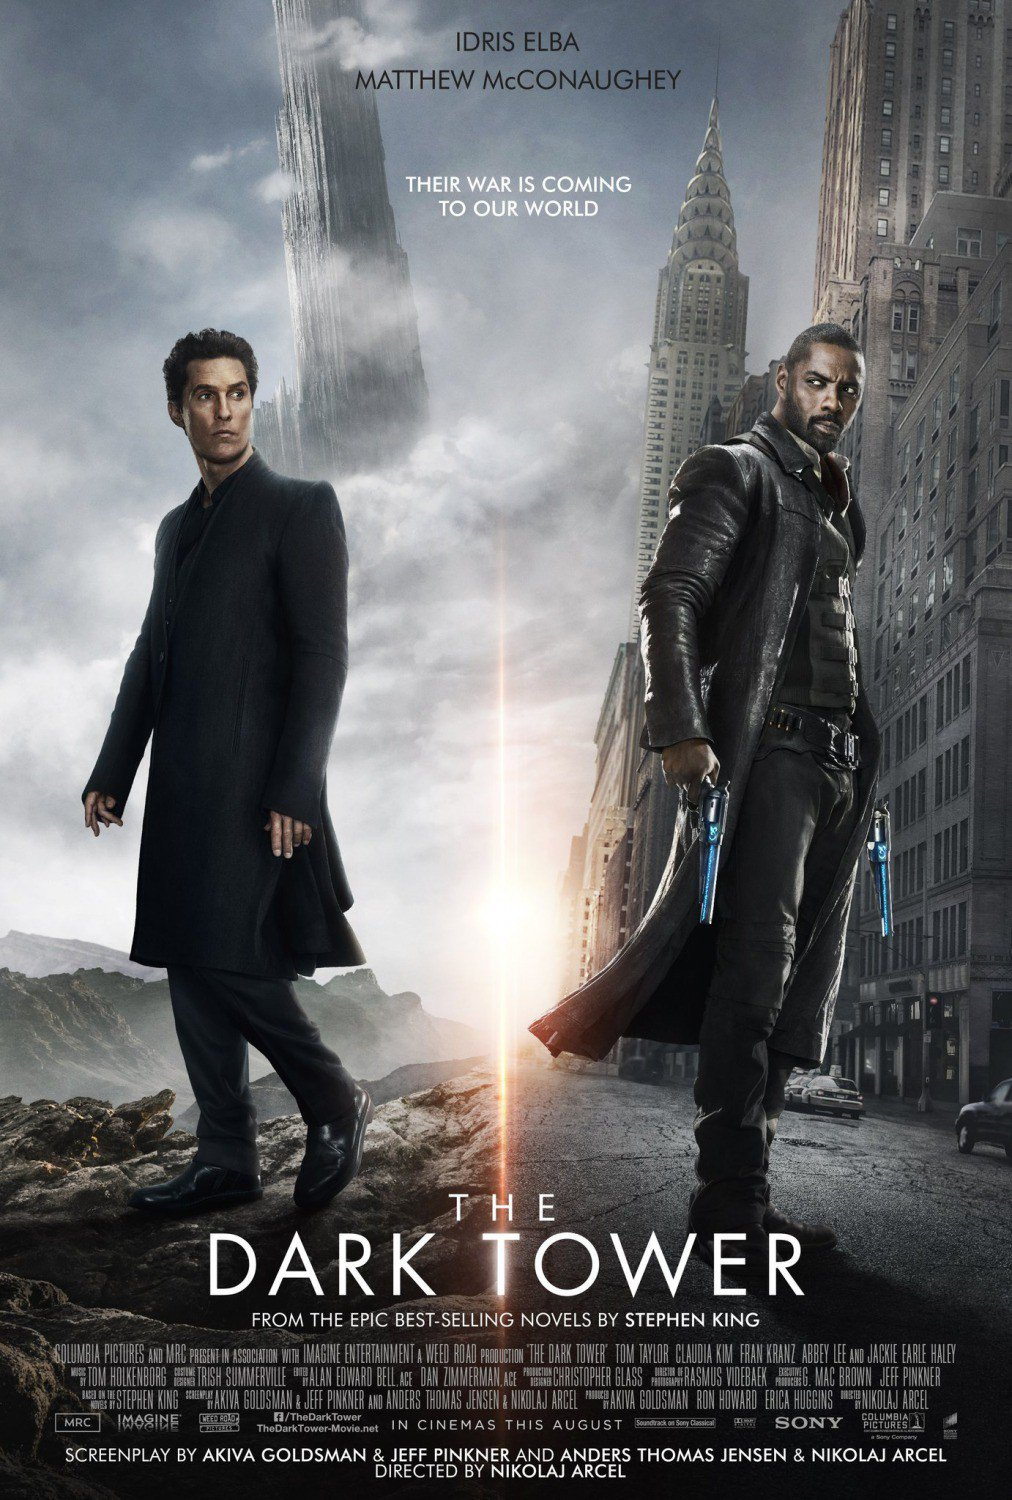 """The Dark Tower"" TV Series Will Be Origin Story With Idris Elba https://t.co/eygjdF69Yi https://t.co/XcUqhjf1Xx"